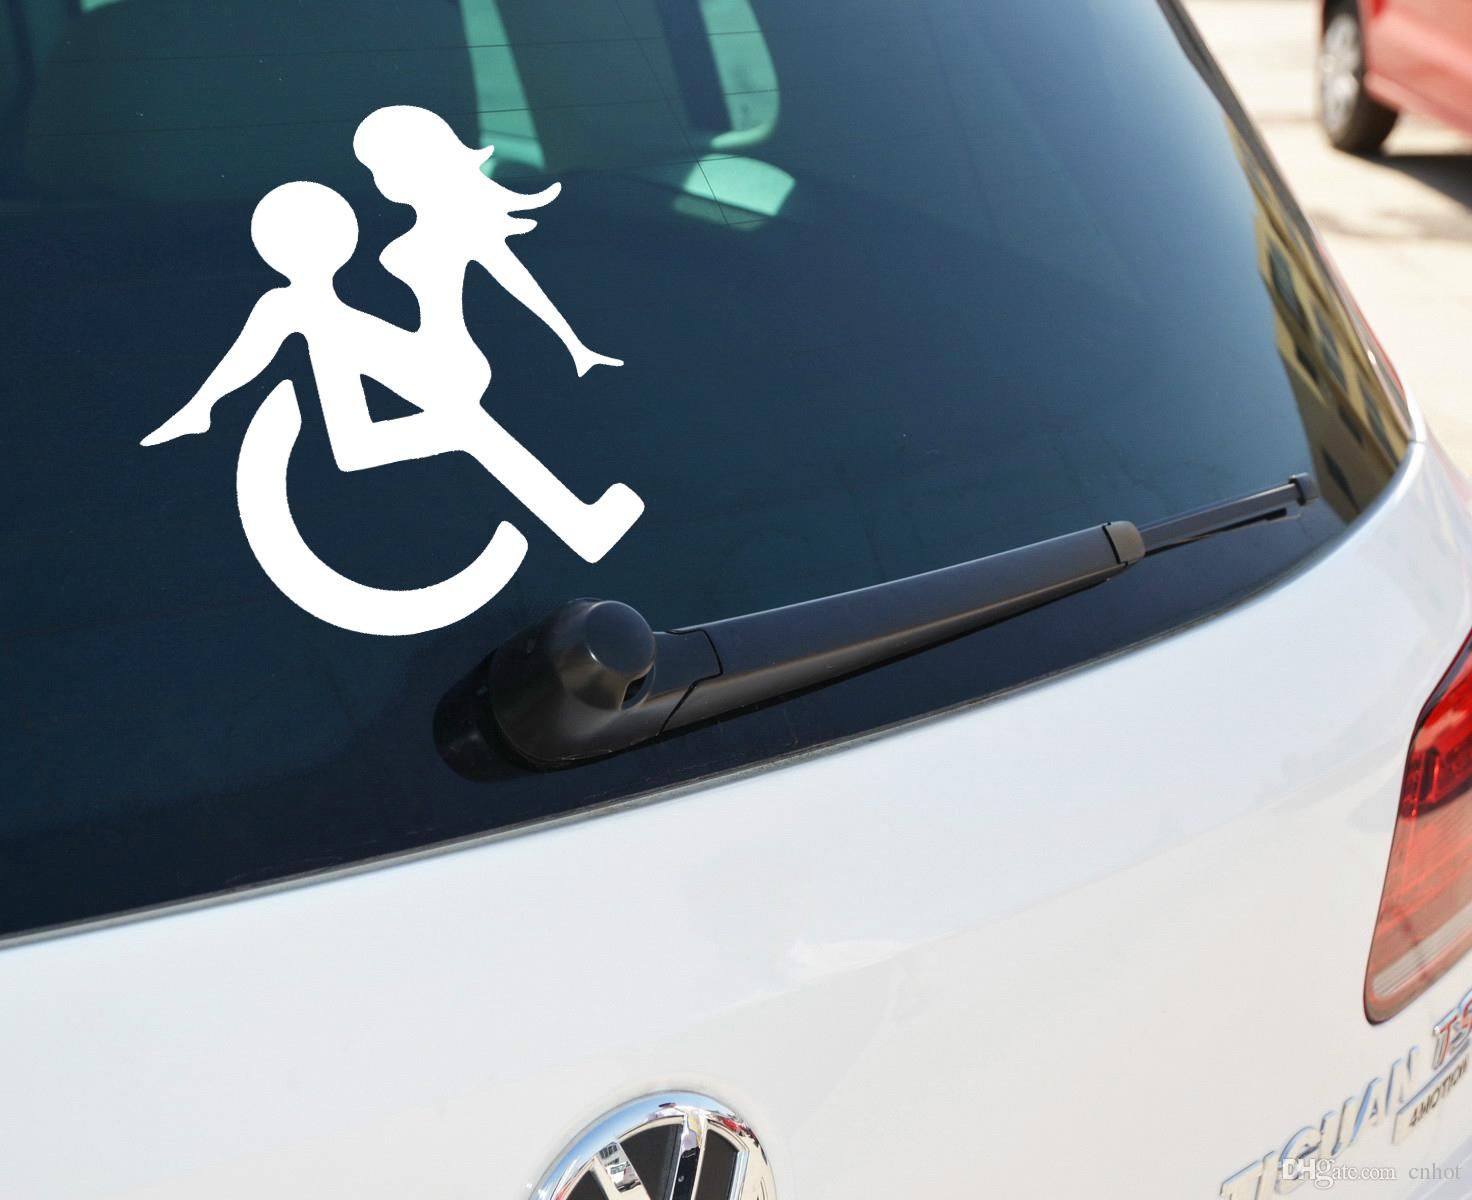 Car mirror sticker design - Wheelchair Sex Funny Decals Vinyl Stickers Suitable For Cars Bikes Boats Funny Decals Vinyl Stickers Online With 30 16 Piece On Cnhot S Store Dhgate Com